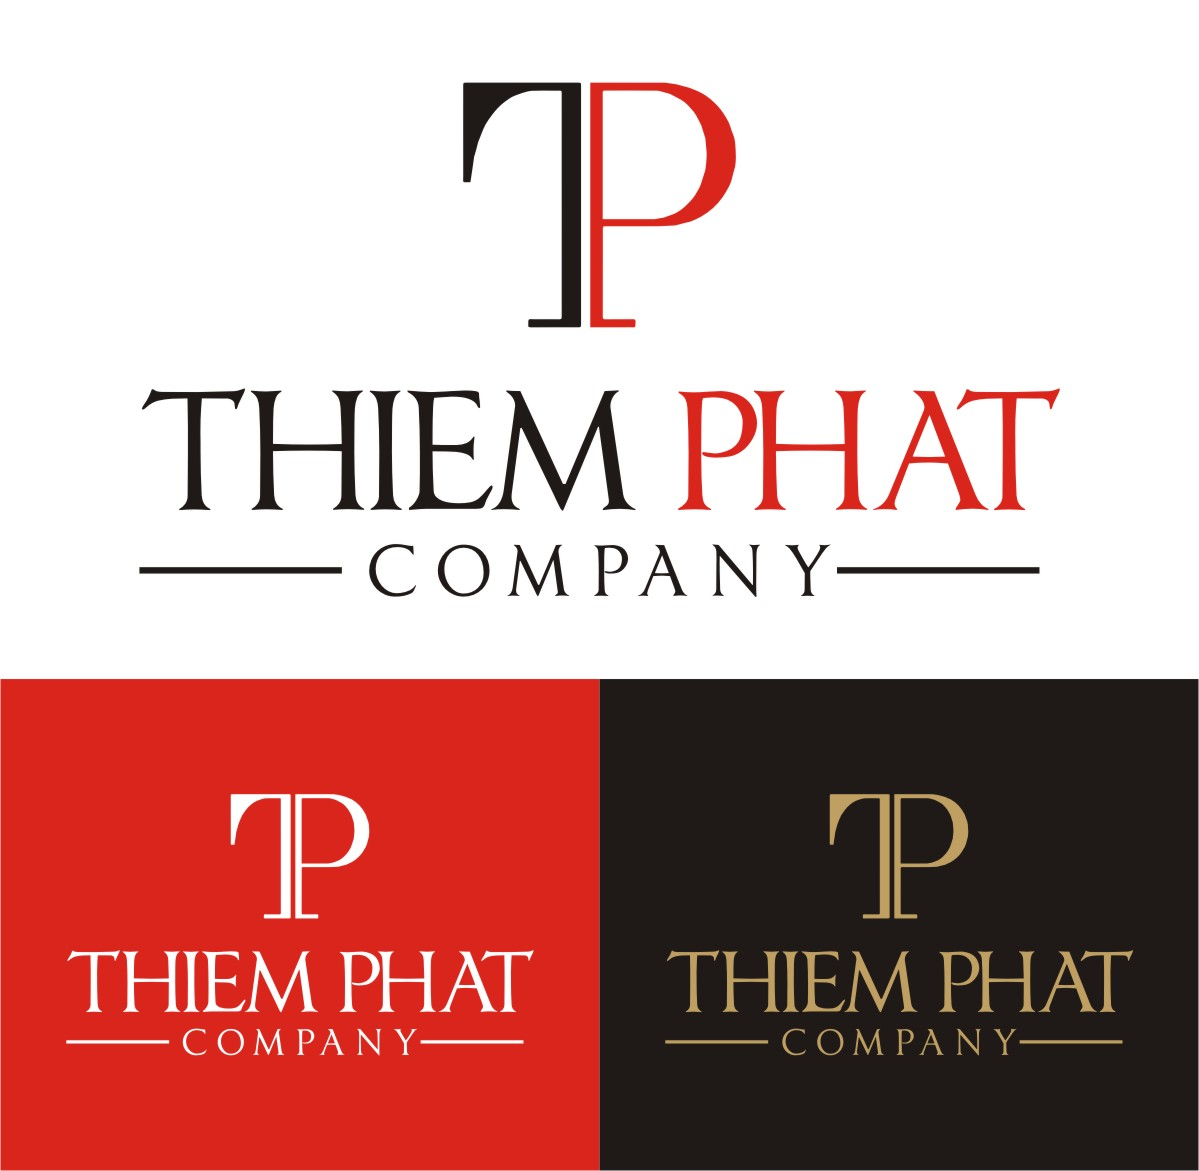 Logo Design by Spider Graphics - Entry No. 16 in the Logo Design Contest New Logo Design for Thiem Phat company.